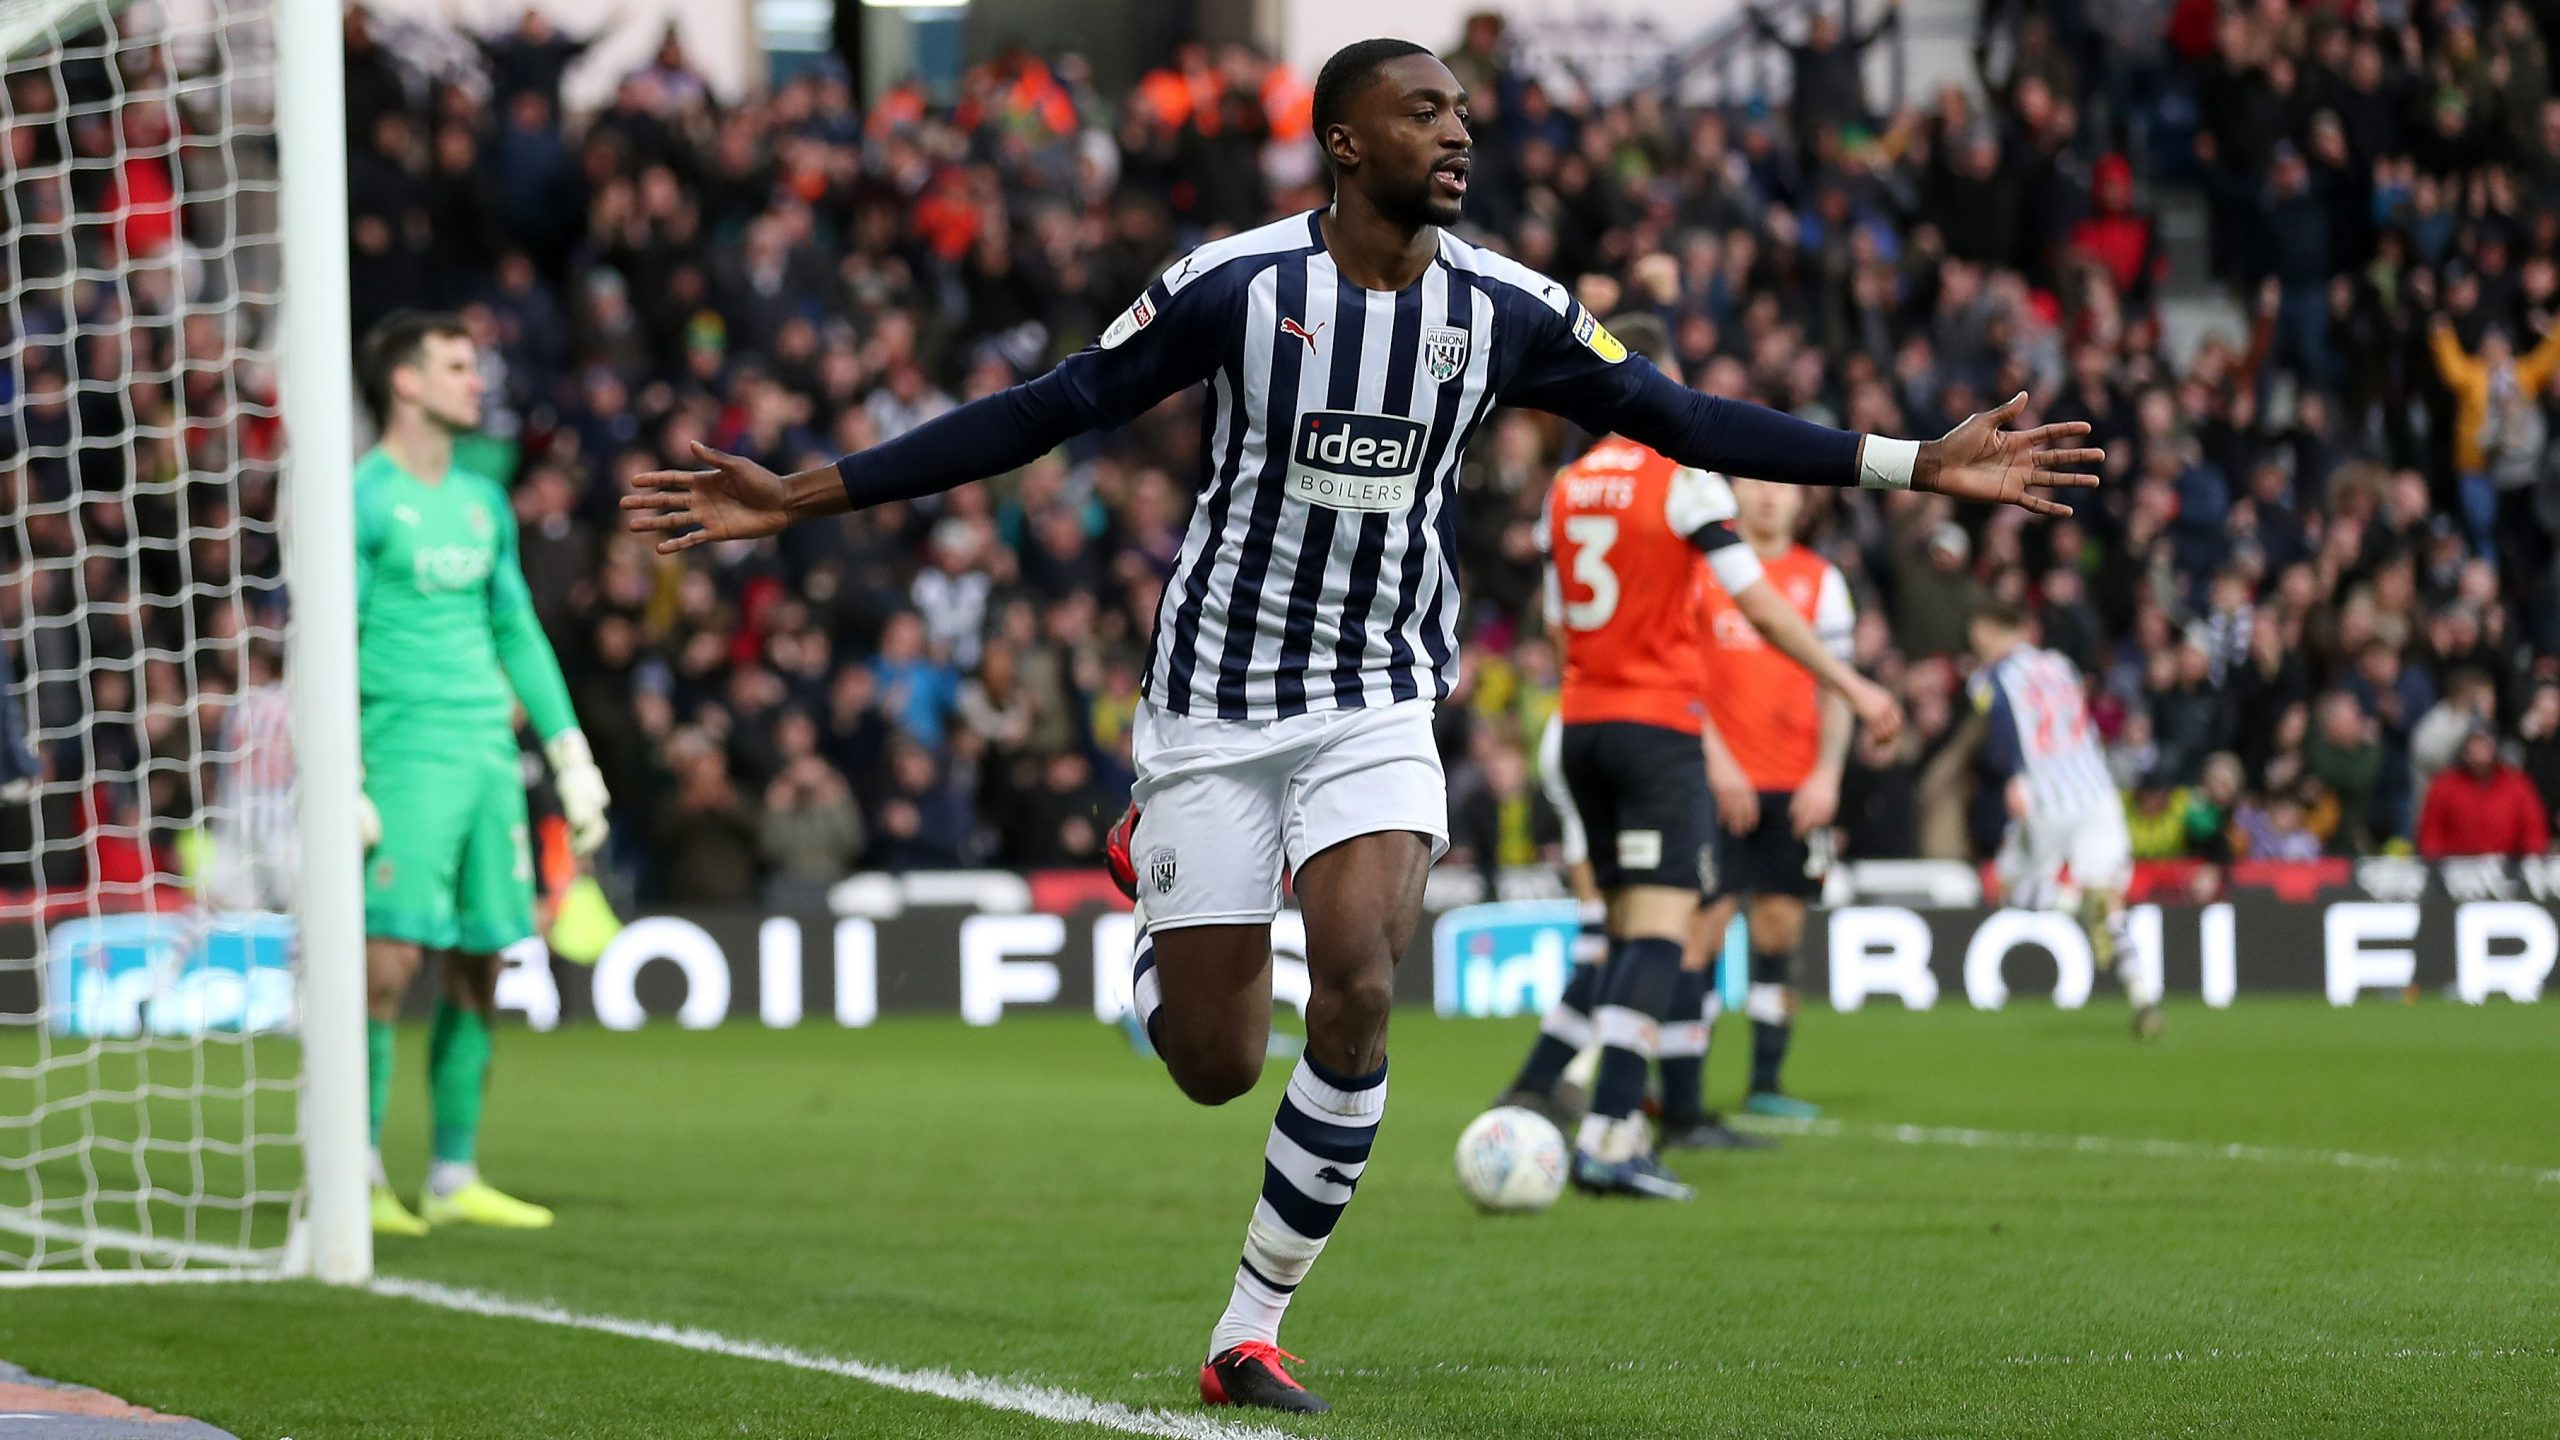 Championship: Ajayi On Target As West Brom Pip Luton 2-0 At The Hawthorns